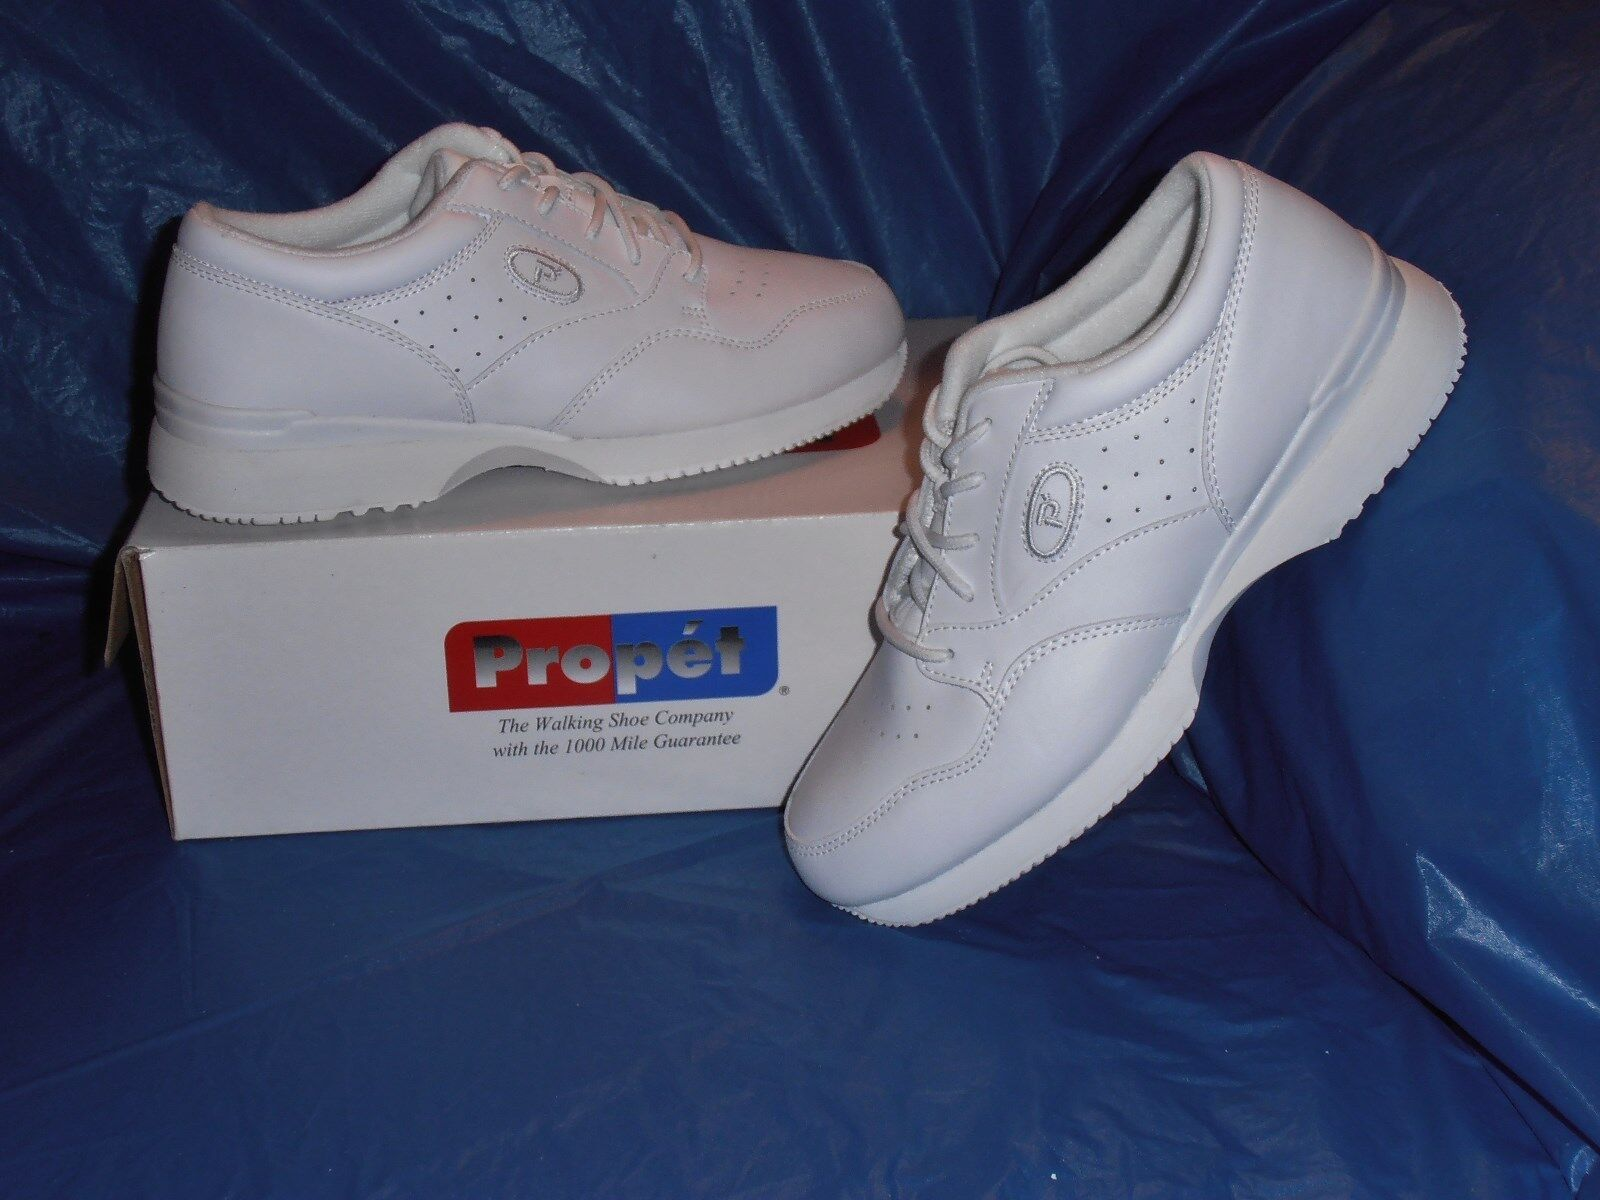 Propet M3704 Mens Lite Walking shoes,White size 8 1 2 EEE